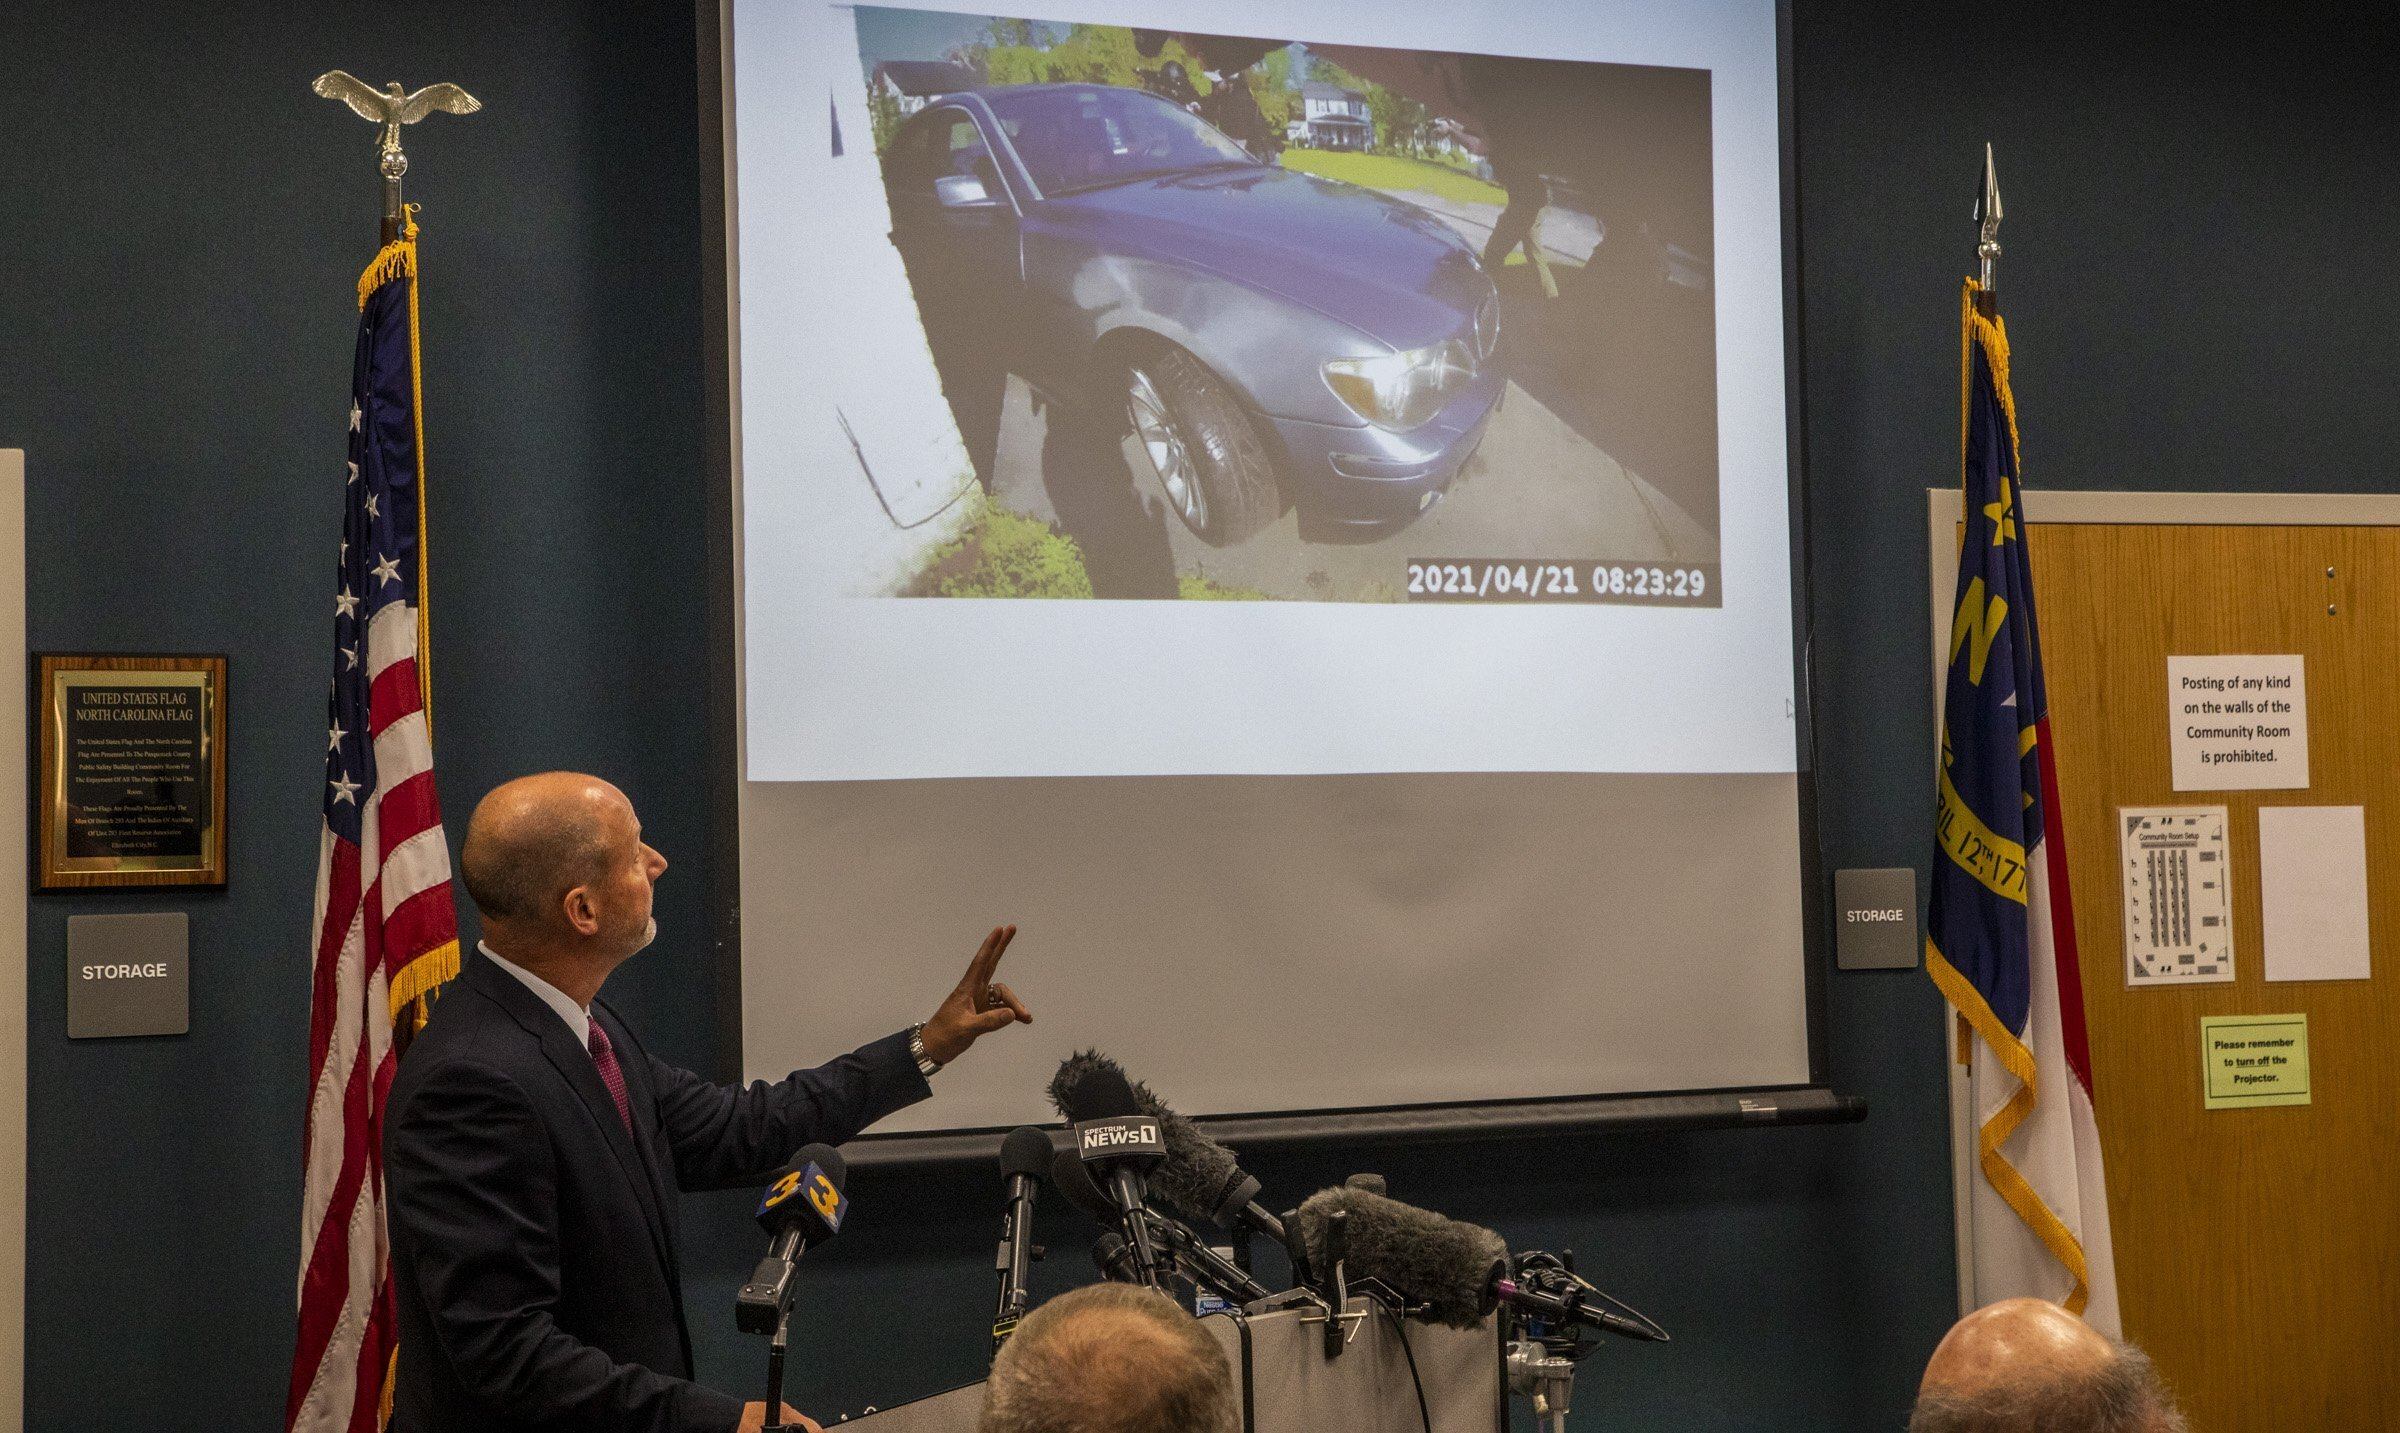 Pasquotank County District Attorney Andrew Womble shows still images from police body camera footage after announcing he will not charge deputies in the April 21 fatal shooting of Andrew Brown Jr. during a news conference Tuesday, May 18, 2021 at the Pasquotank County Public Safety building in Elizabeth City, N.C. Womble said he would not release bodycam video of the confrontation between Brown, a Black man, and the law enforcement officers. (Travis Long/The News & Observer via AP)